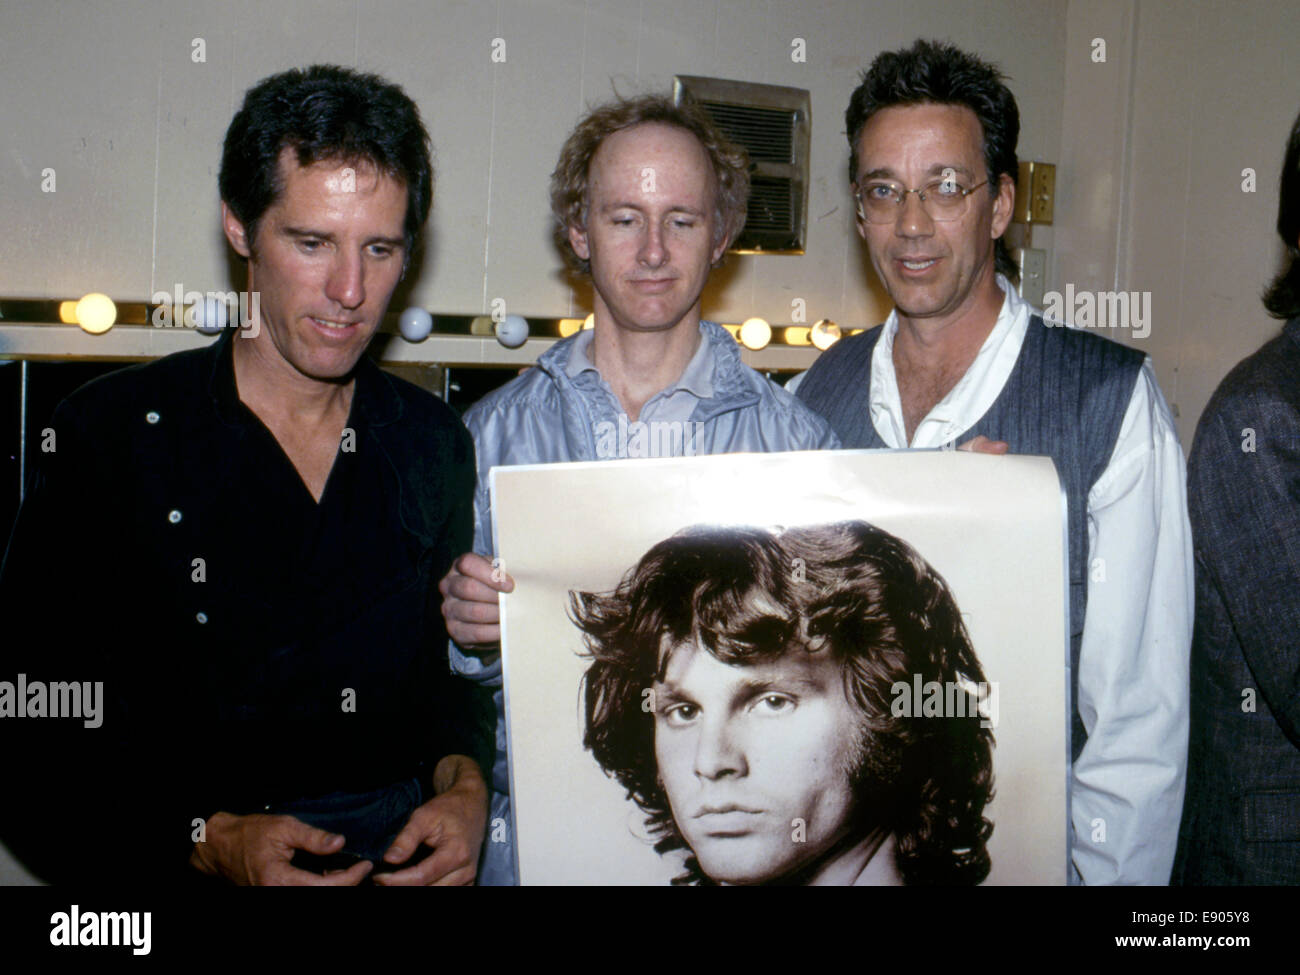 Stock Photo - in 1984 the remaining members of The Doors John Densmore Robby Krieger and Ray Manzarek at release of L.A. Woman music video